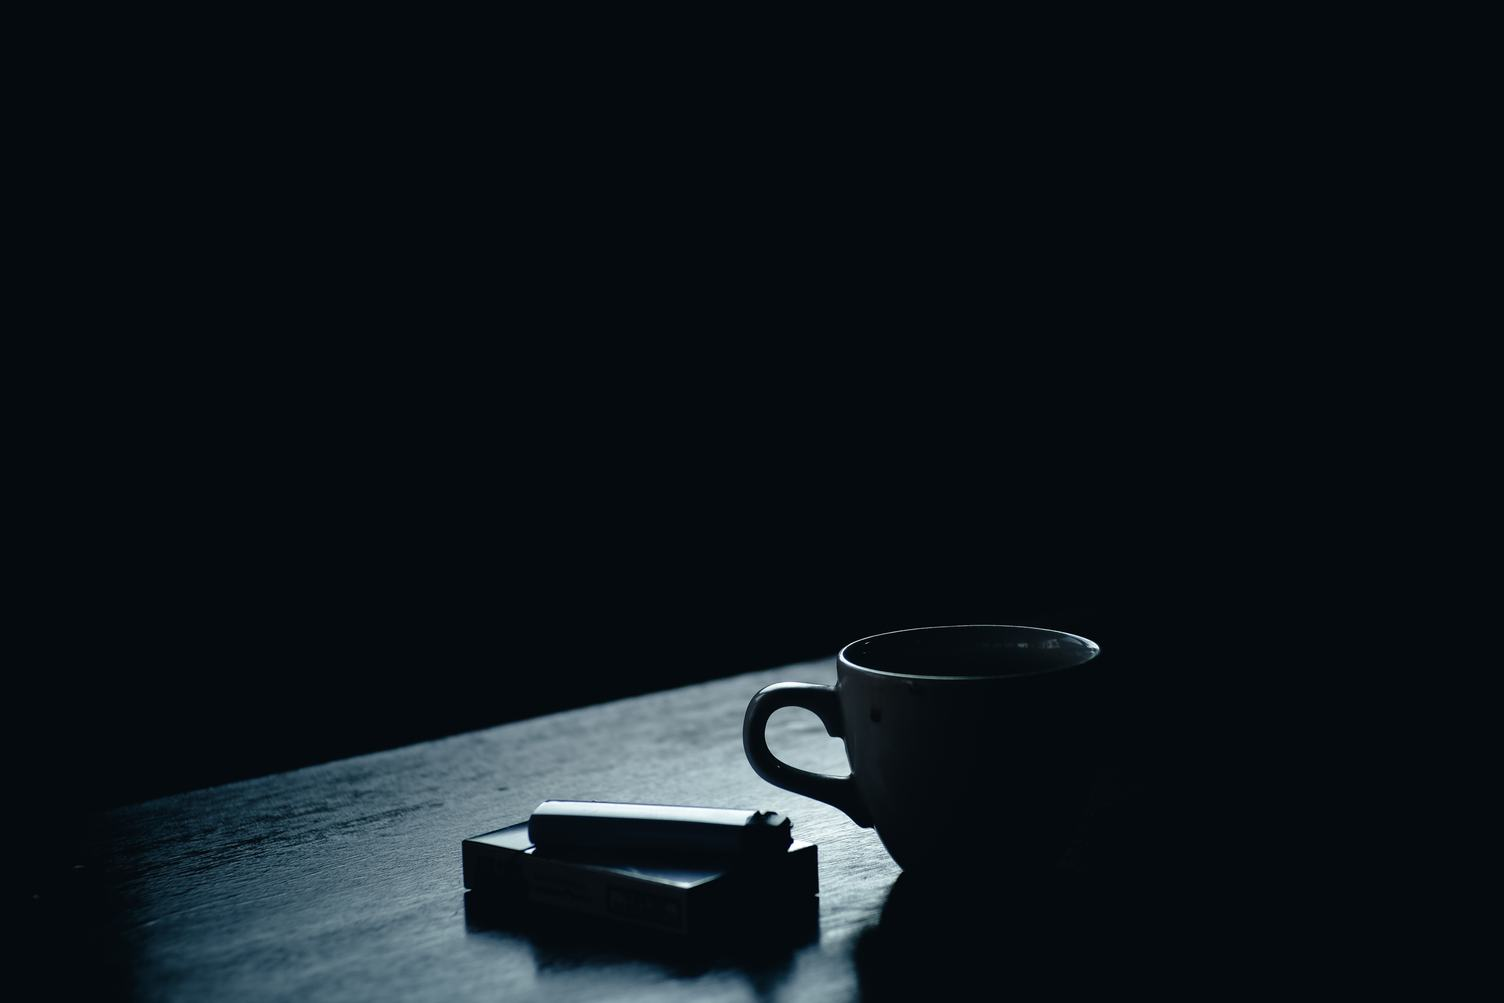 A Pack of Cigarettes and Coffee on the Table